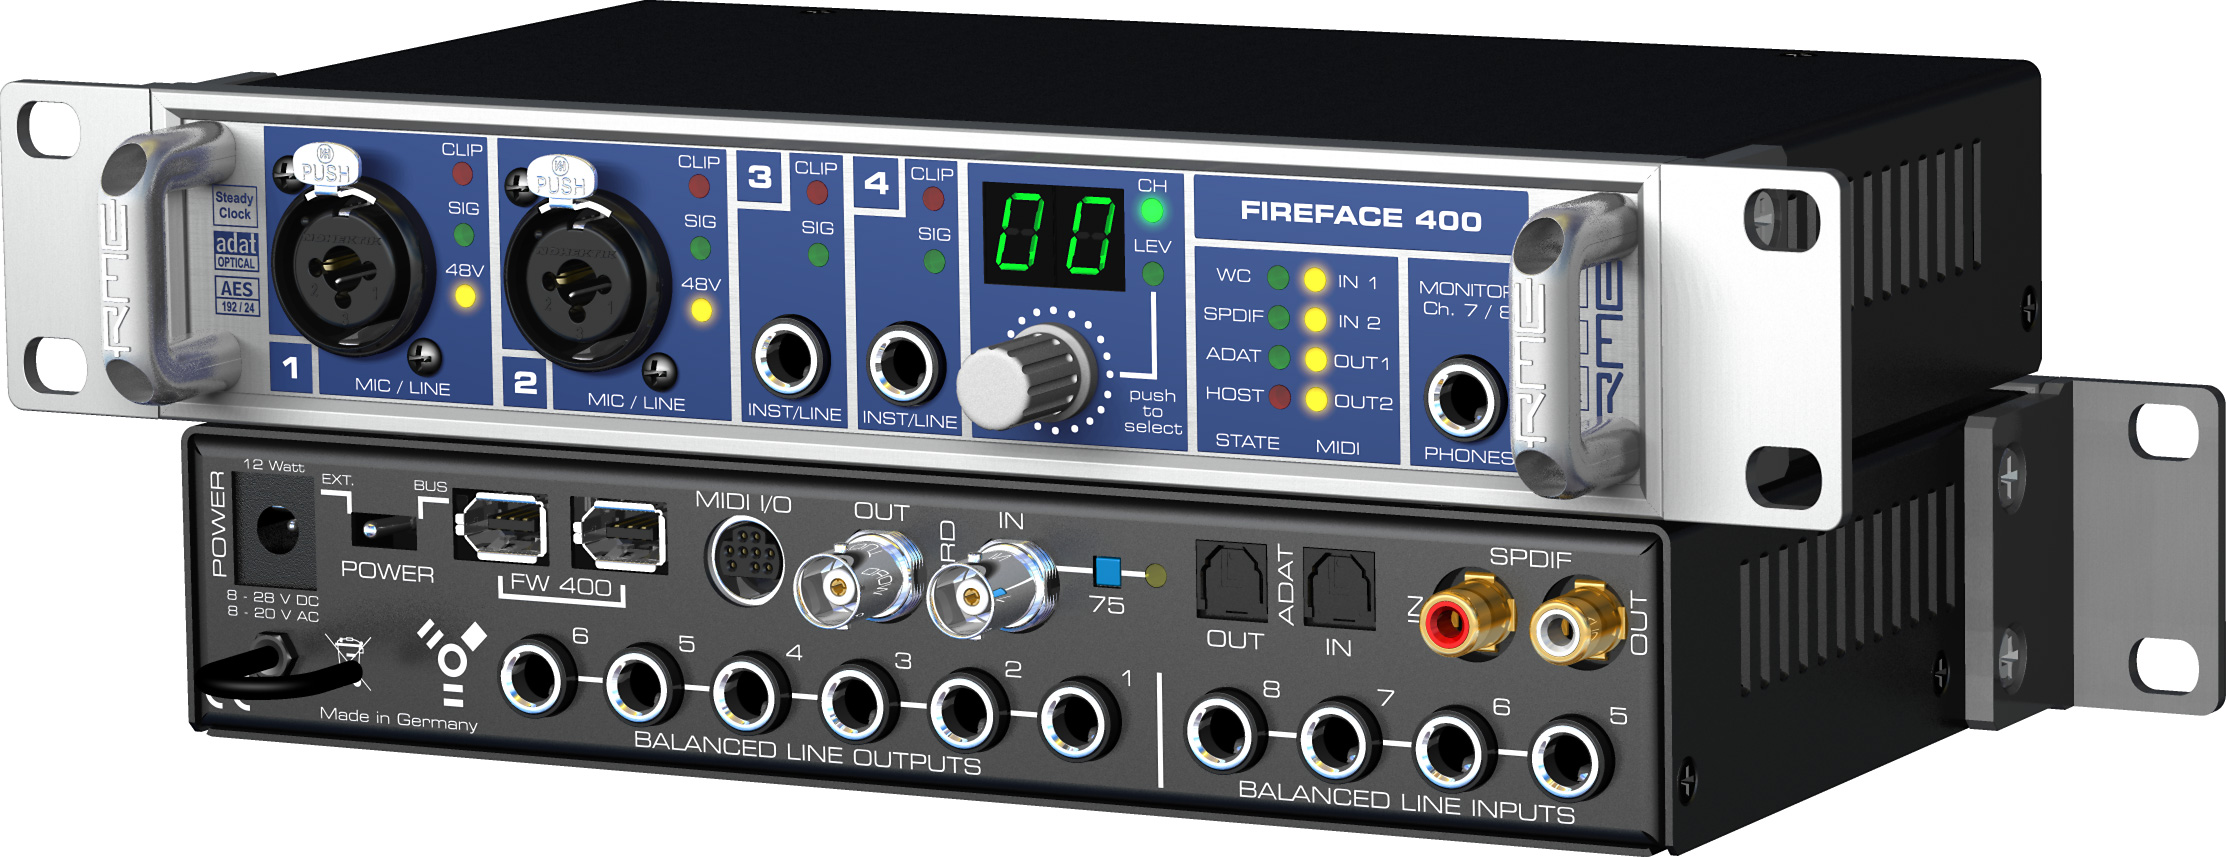 RME FIREFACE 400 DRIVERS FOR WINDOWS 8